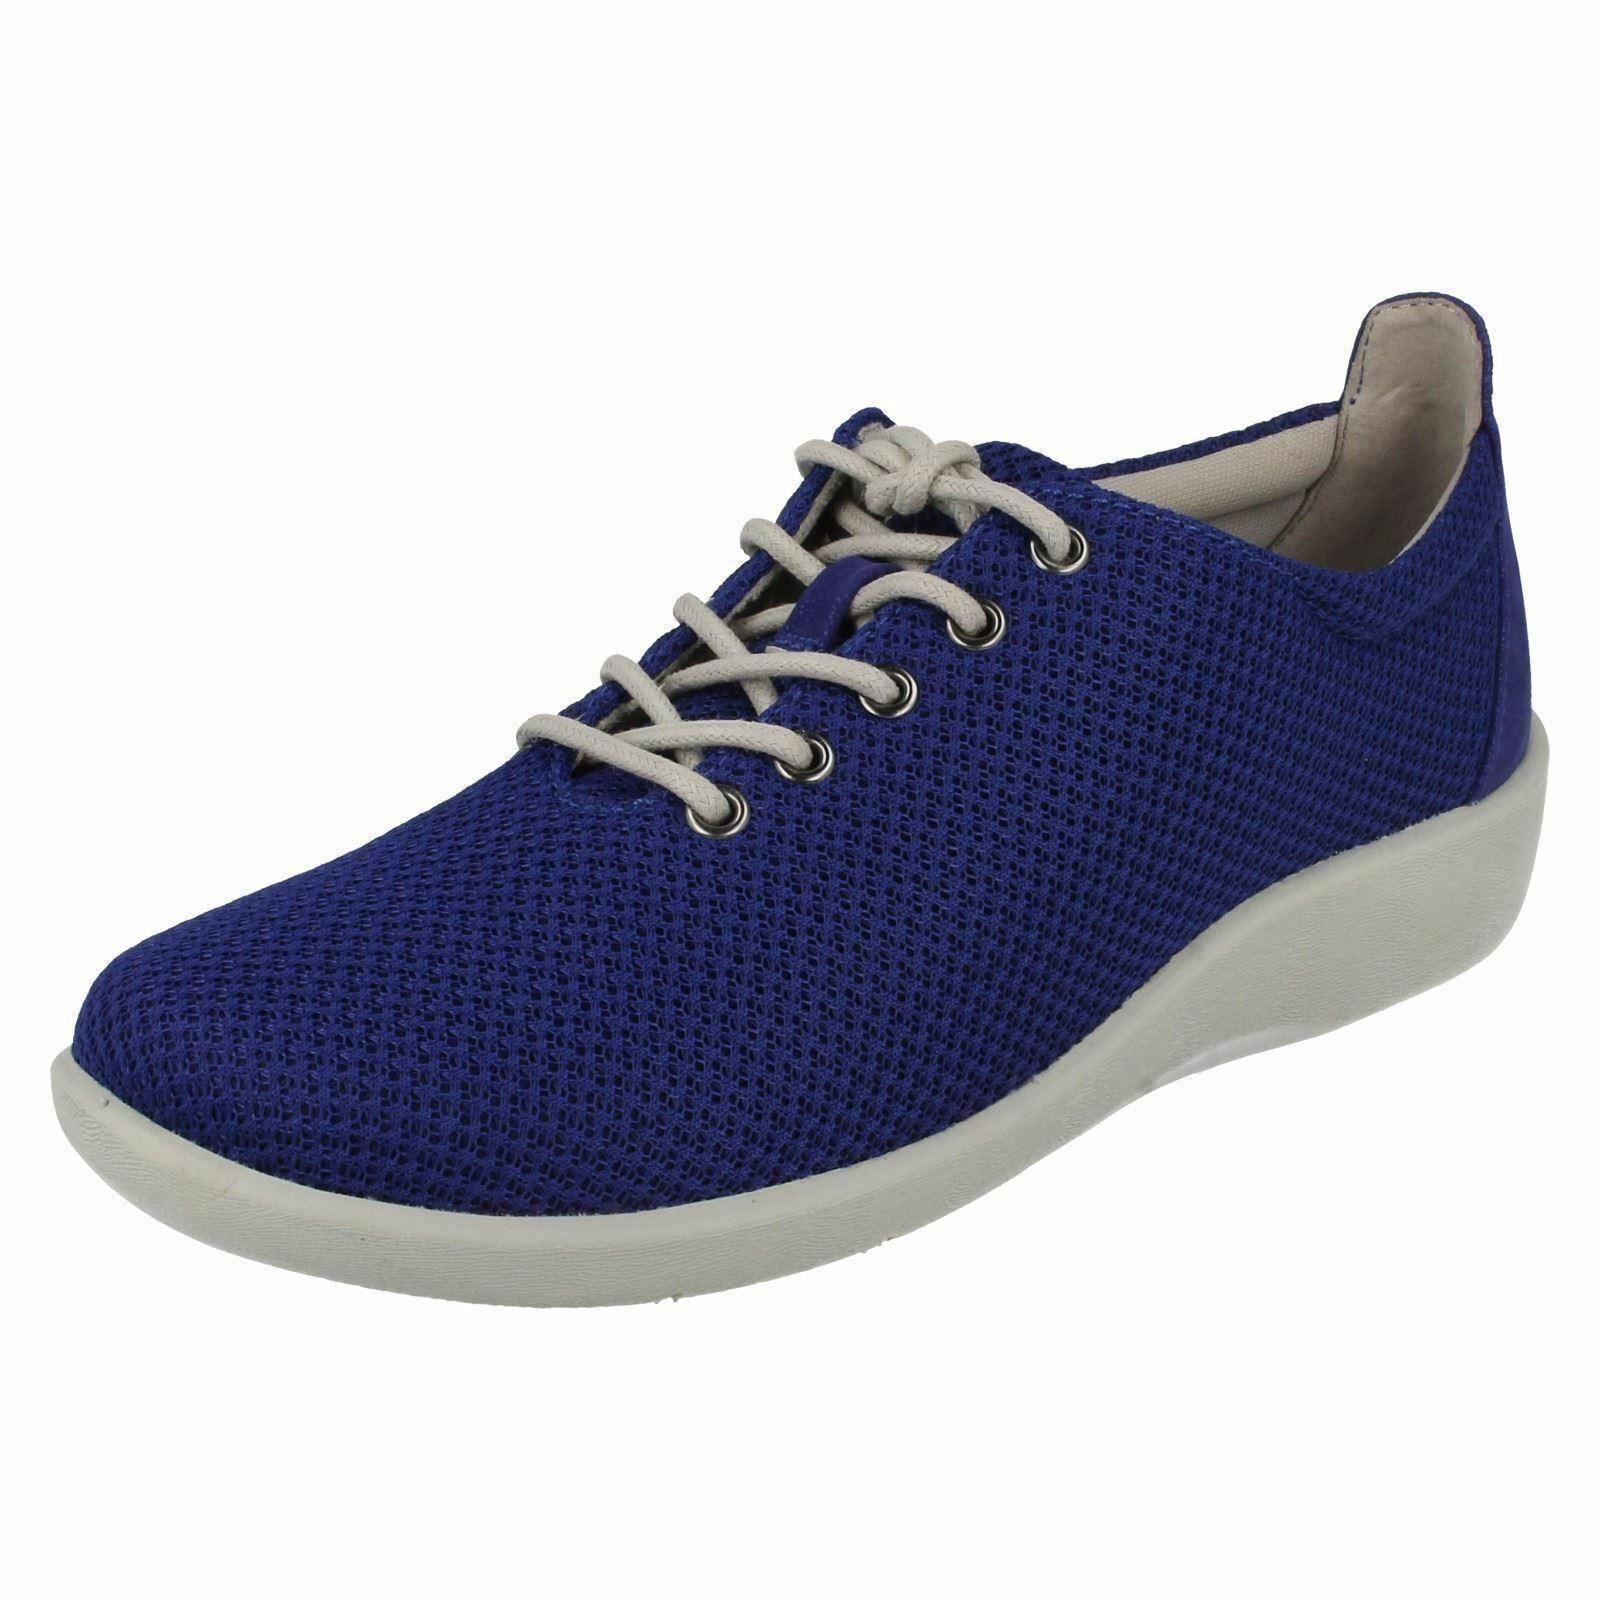 Clarks Donna WIDE FIT BLU CASUAL SCARPE Sillian TINO